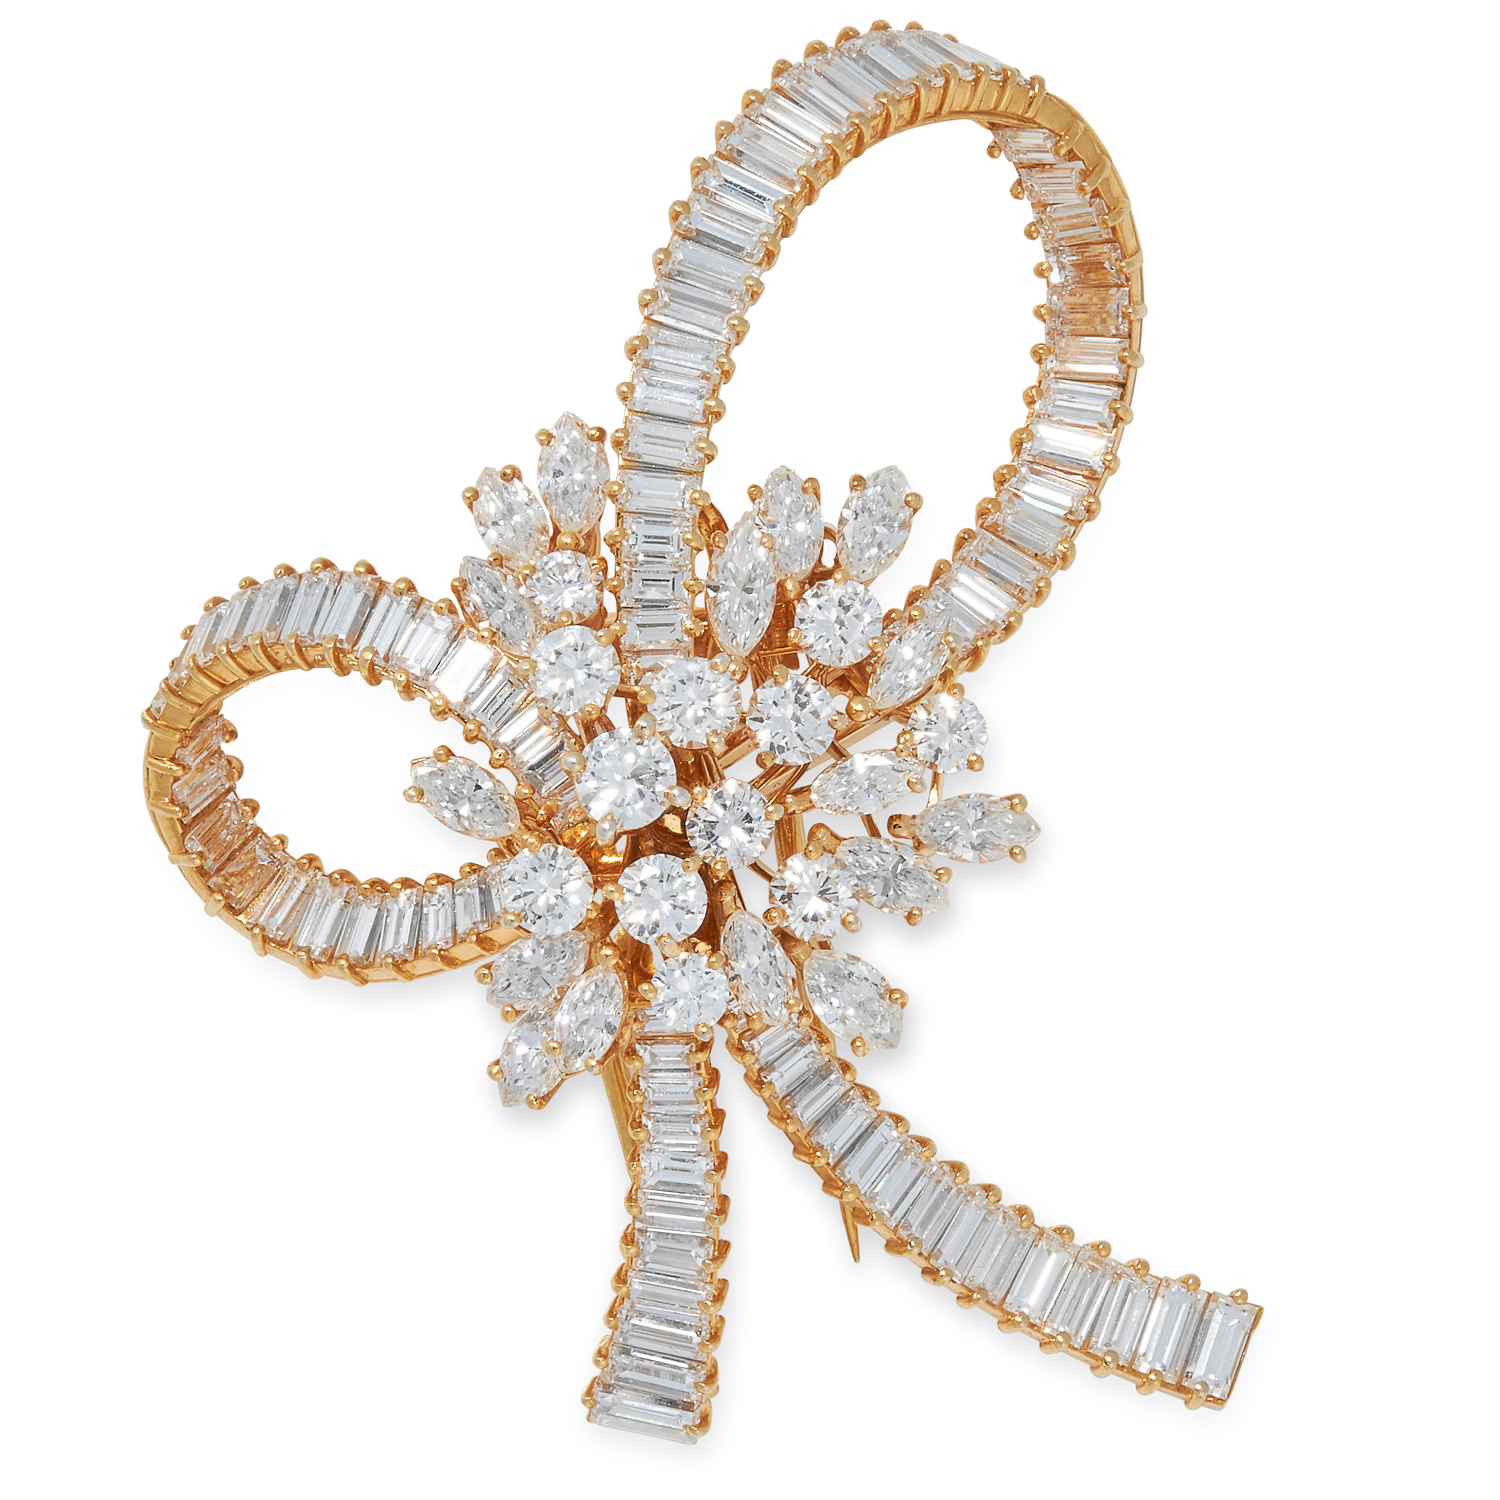 A DIAMOND BOW BROOCH set with round, marquise and baguette cut diamonds totalling approximately 9.00